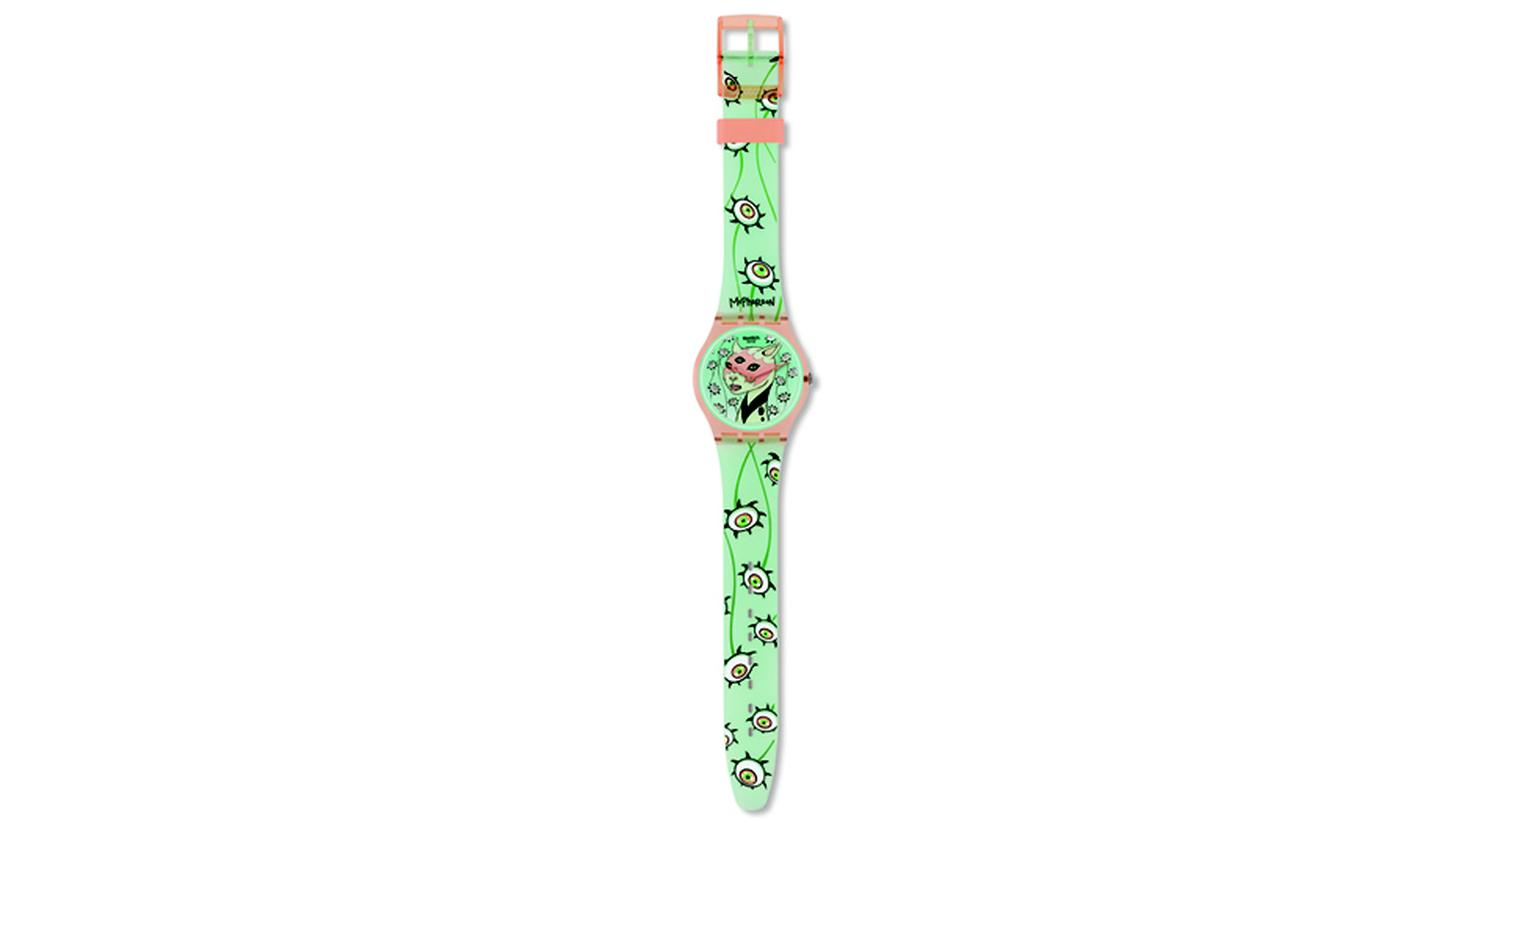 SWATCH AND KIDROBOT. Swatch, The Eyes are watching. Artist, Tara McPherson. Price from £44.50